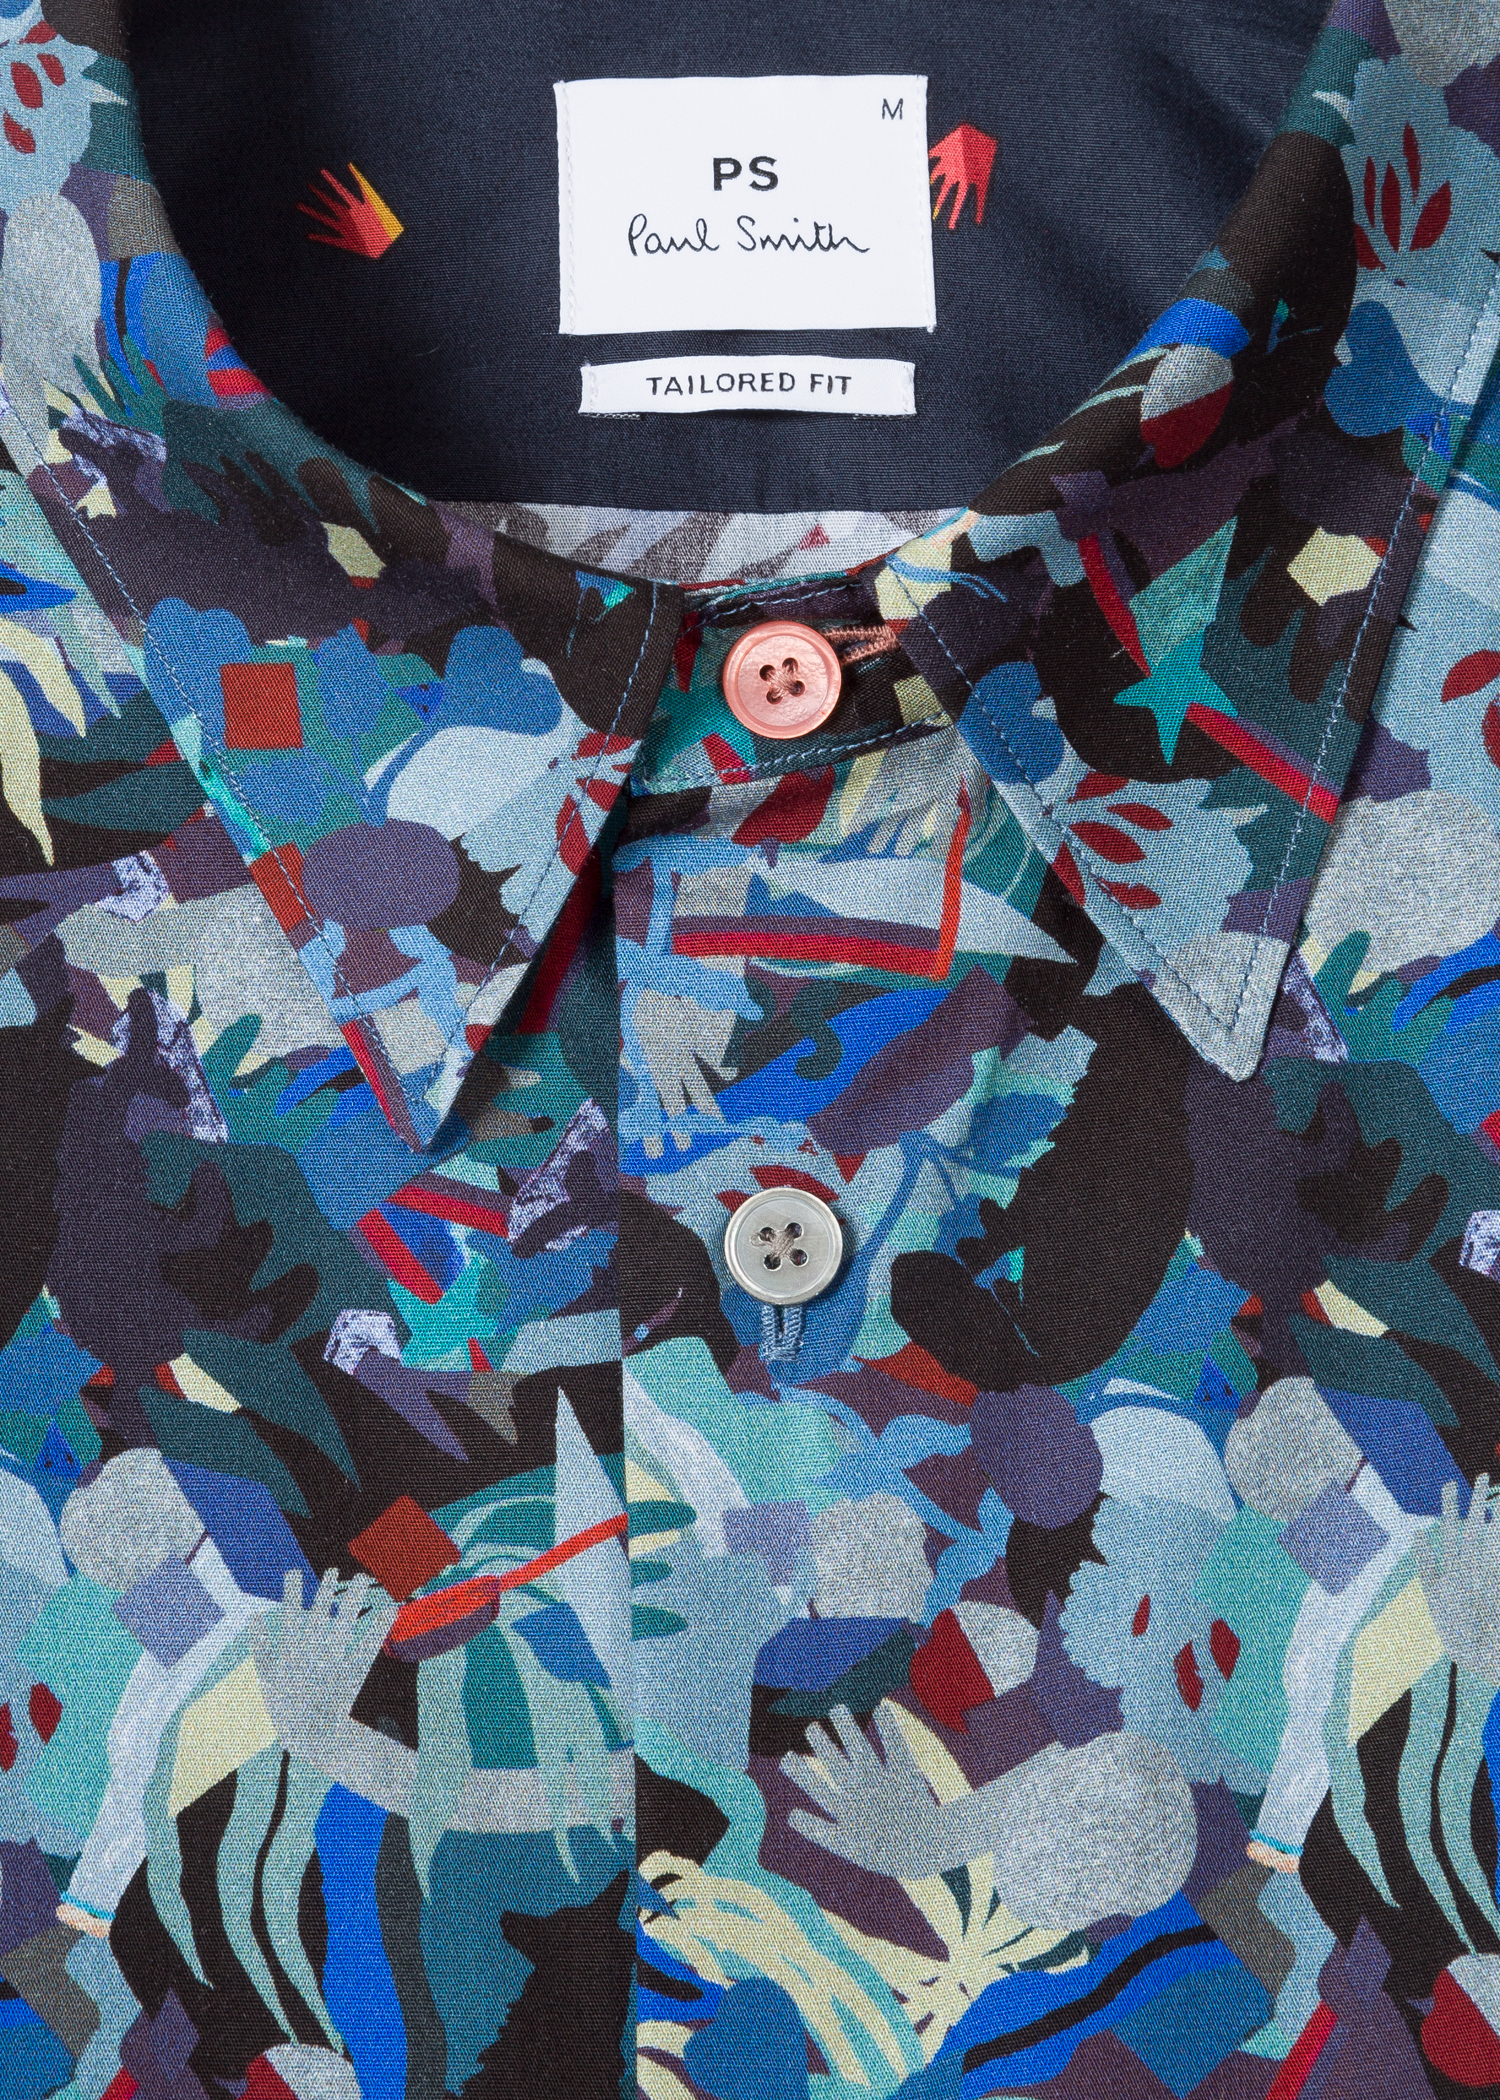 5f9a1b1a34 Collar view - Men's Tailored-Fit Multi-Coloured 'Urban Fox Collage' Cotton